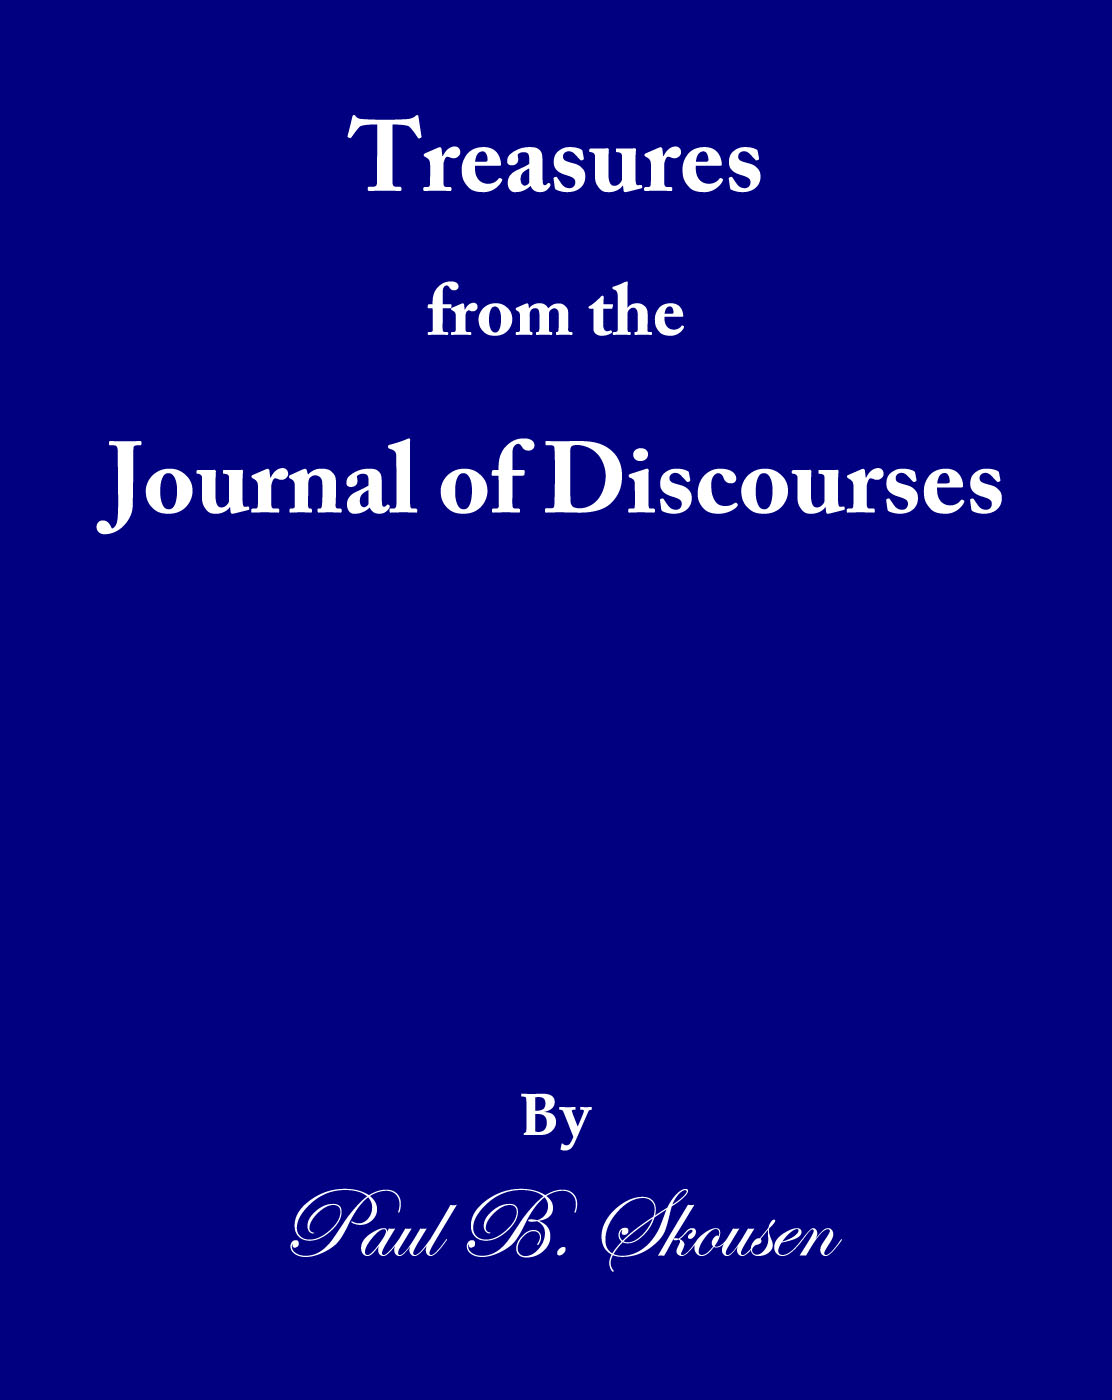 Treasures from the Journal of Discourses cover